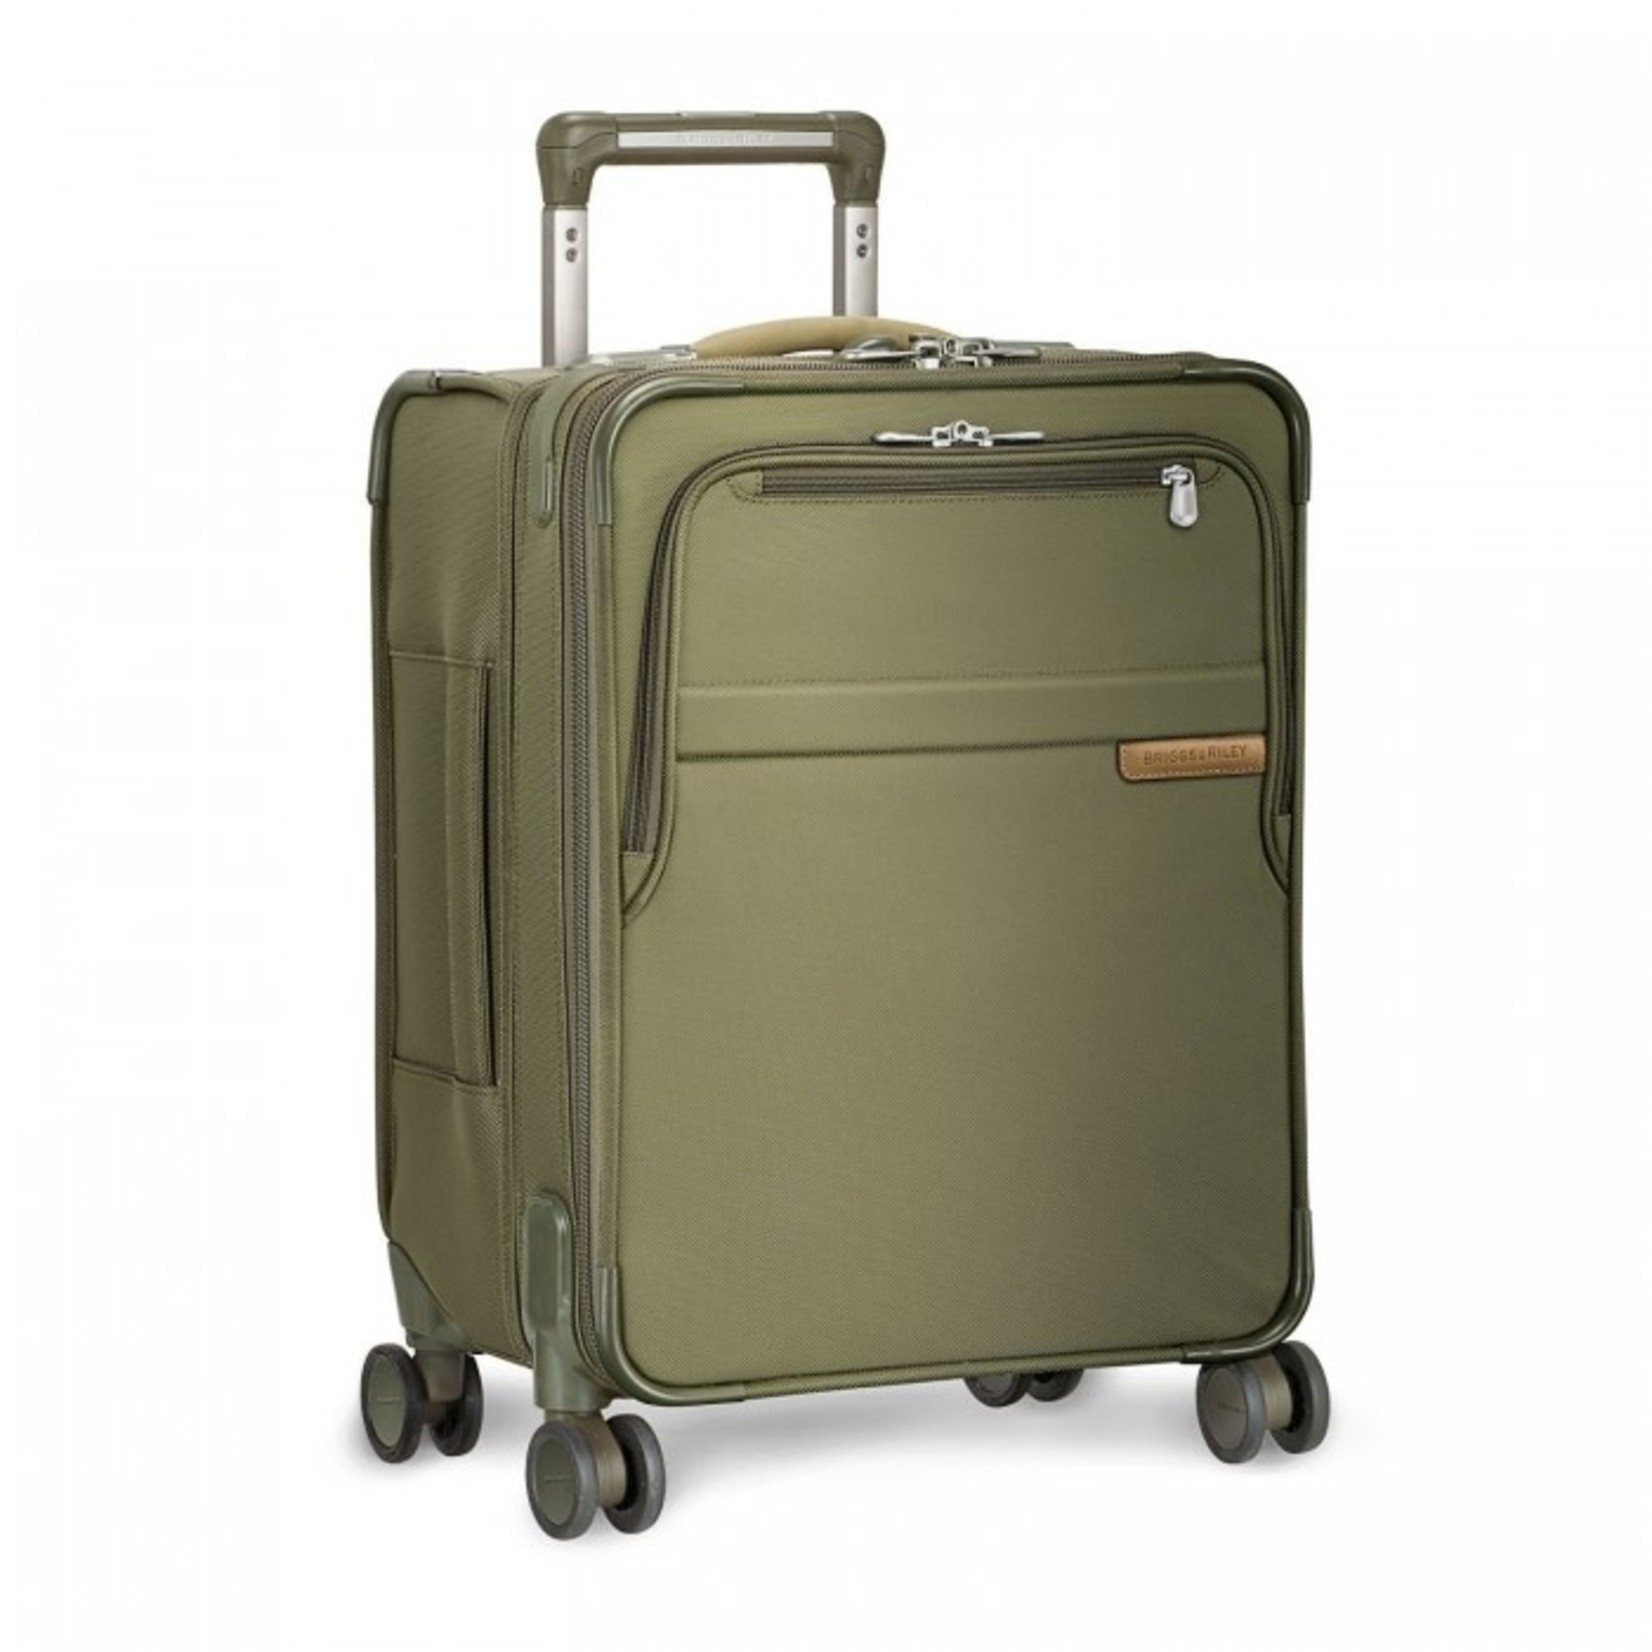 BRIGGS & RILEY BASELINE COMMUTER EXPANDABLE SPINNER